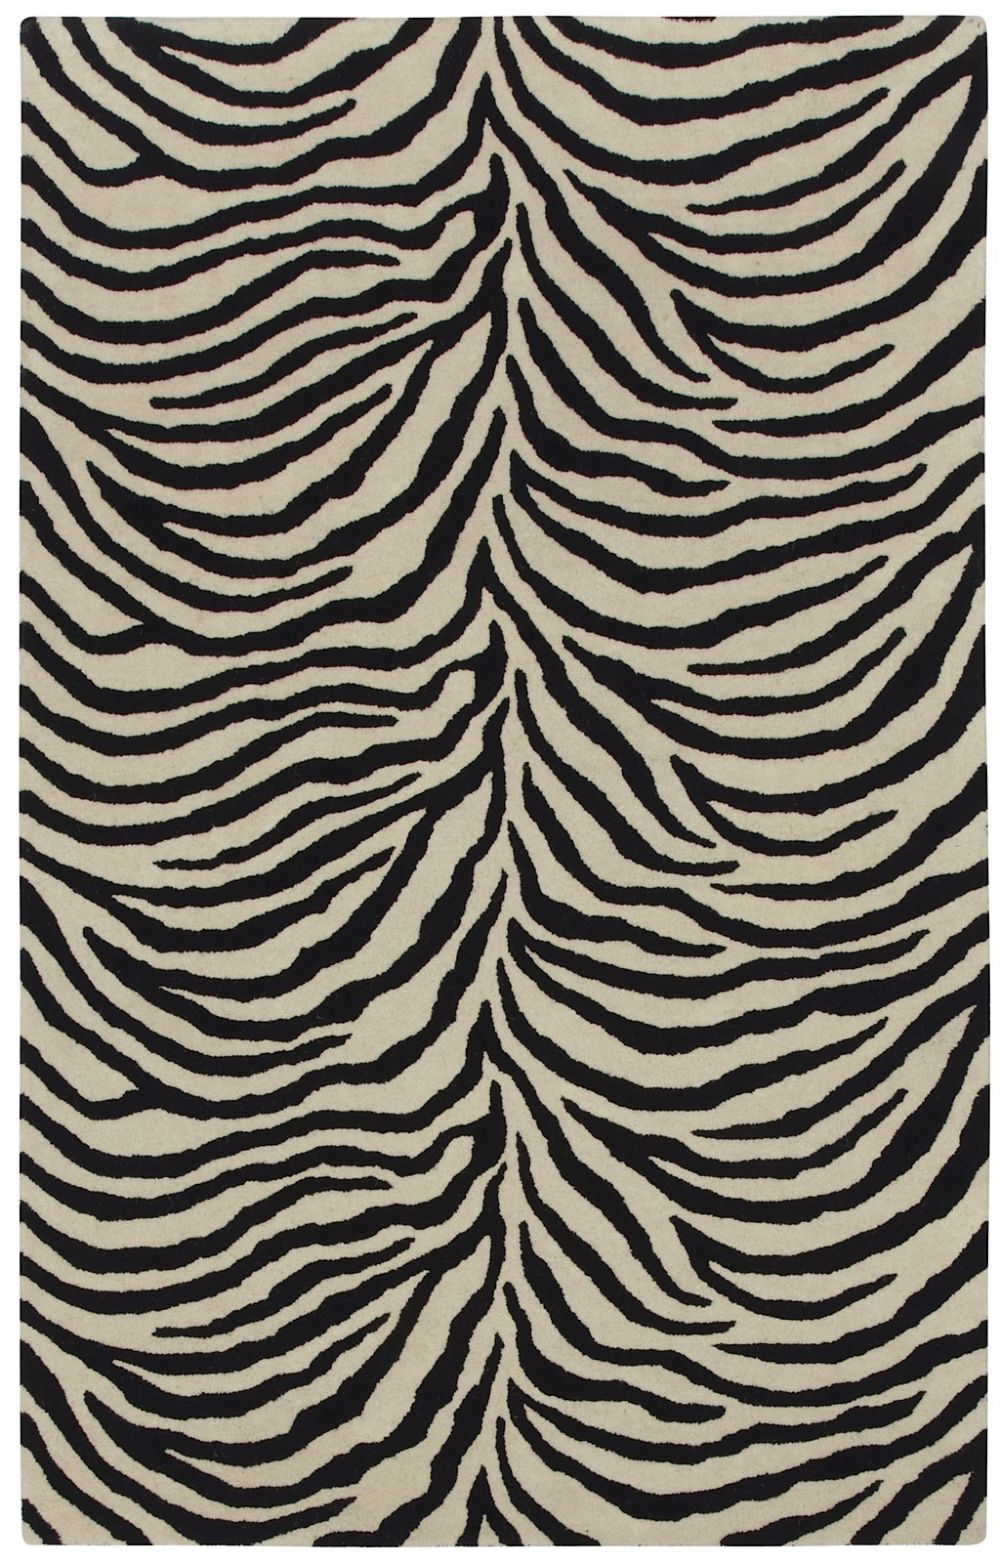 capel expedition-zebra animal inspirations area rug collection